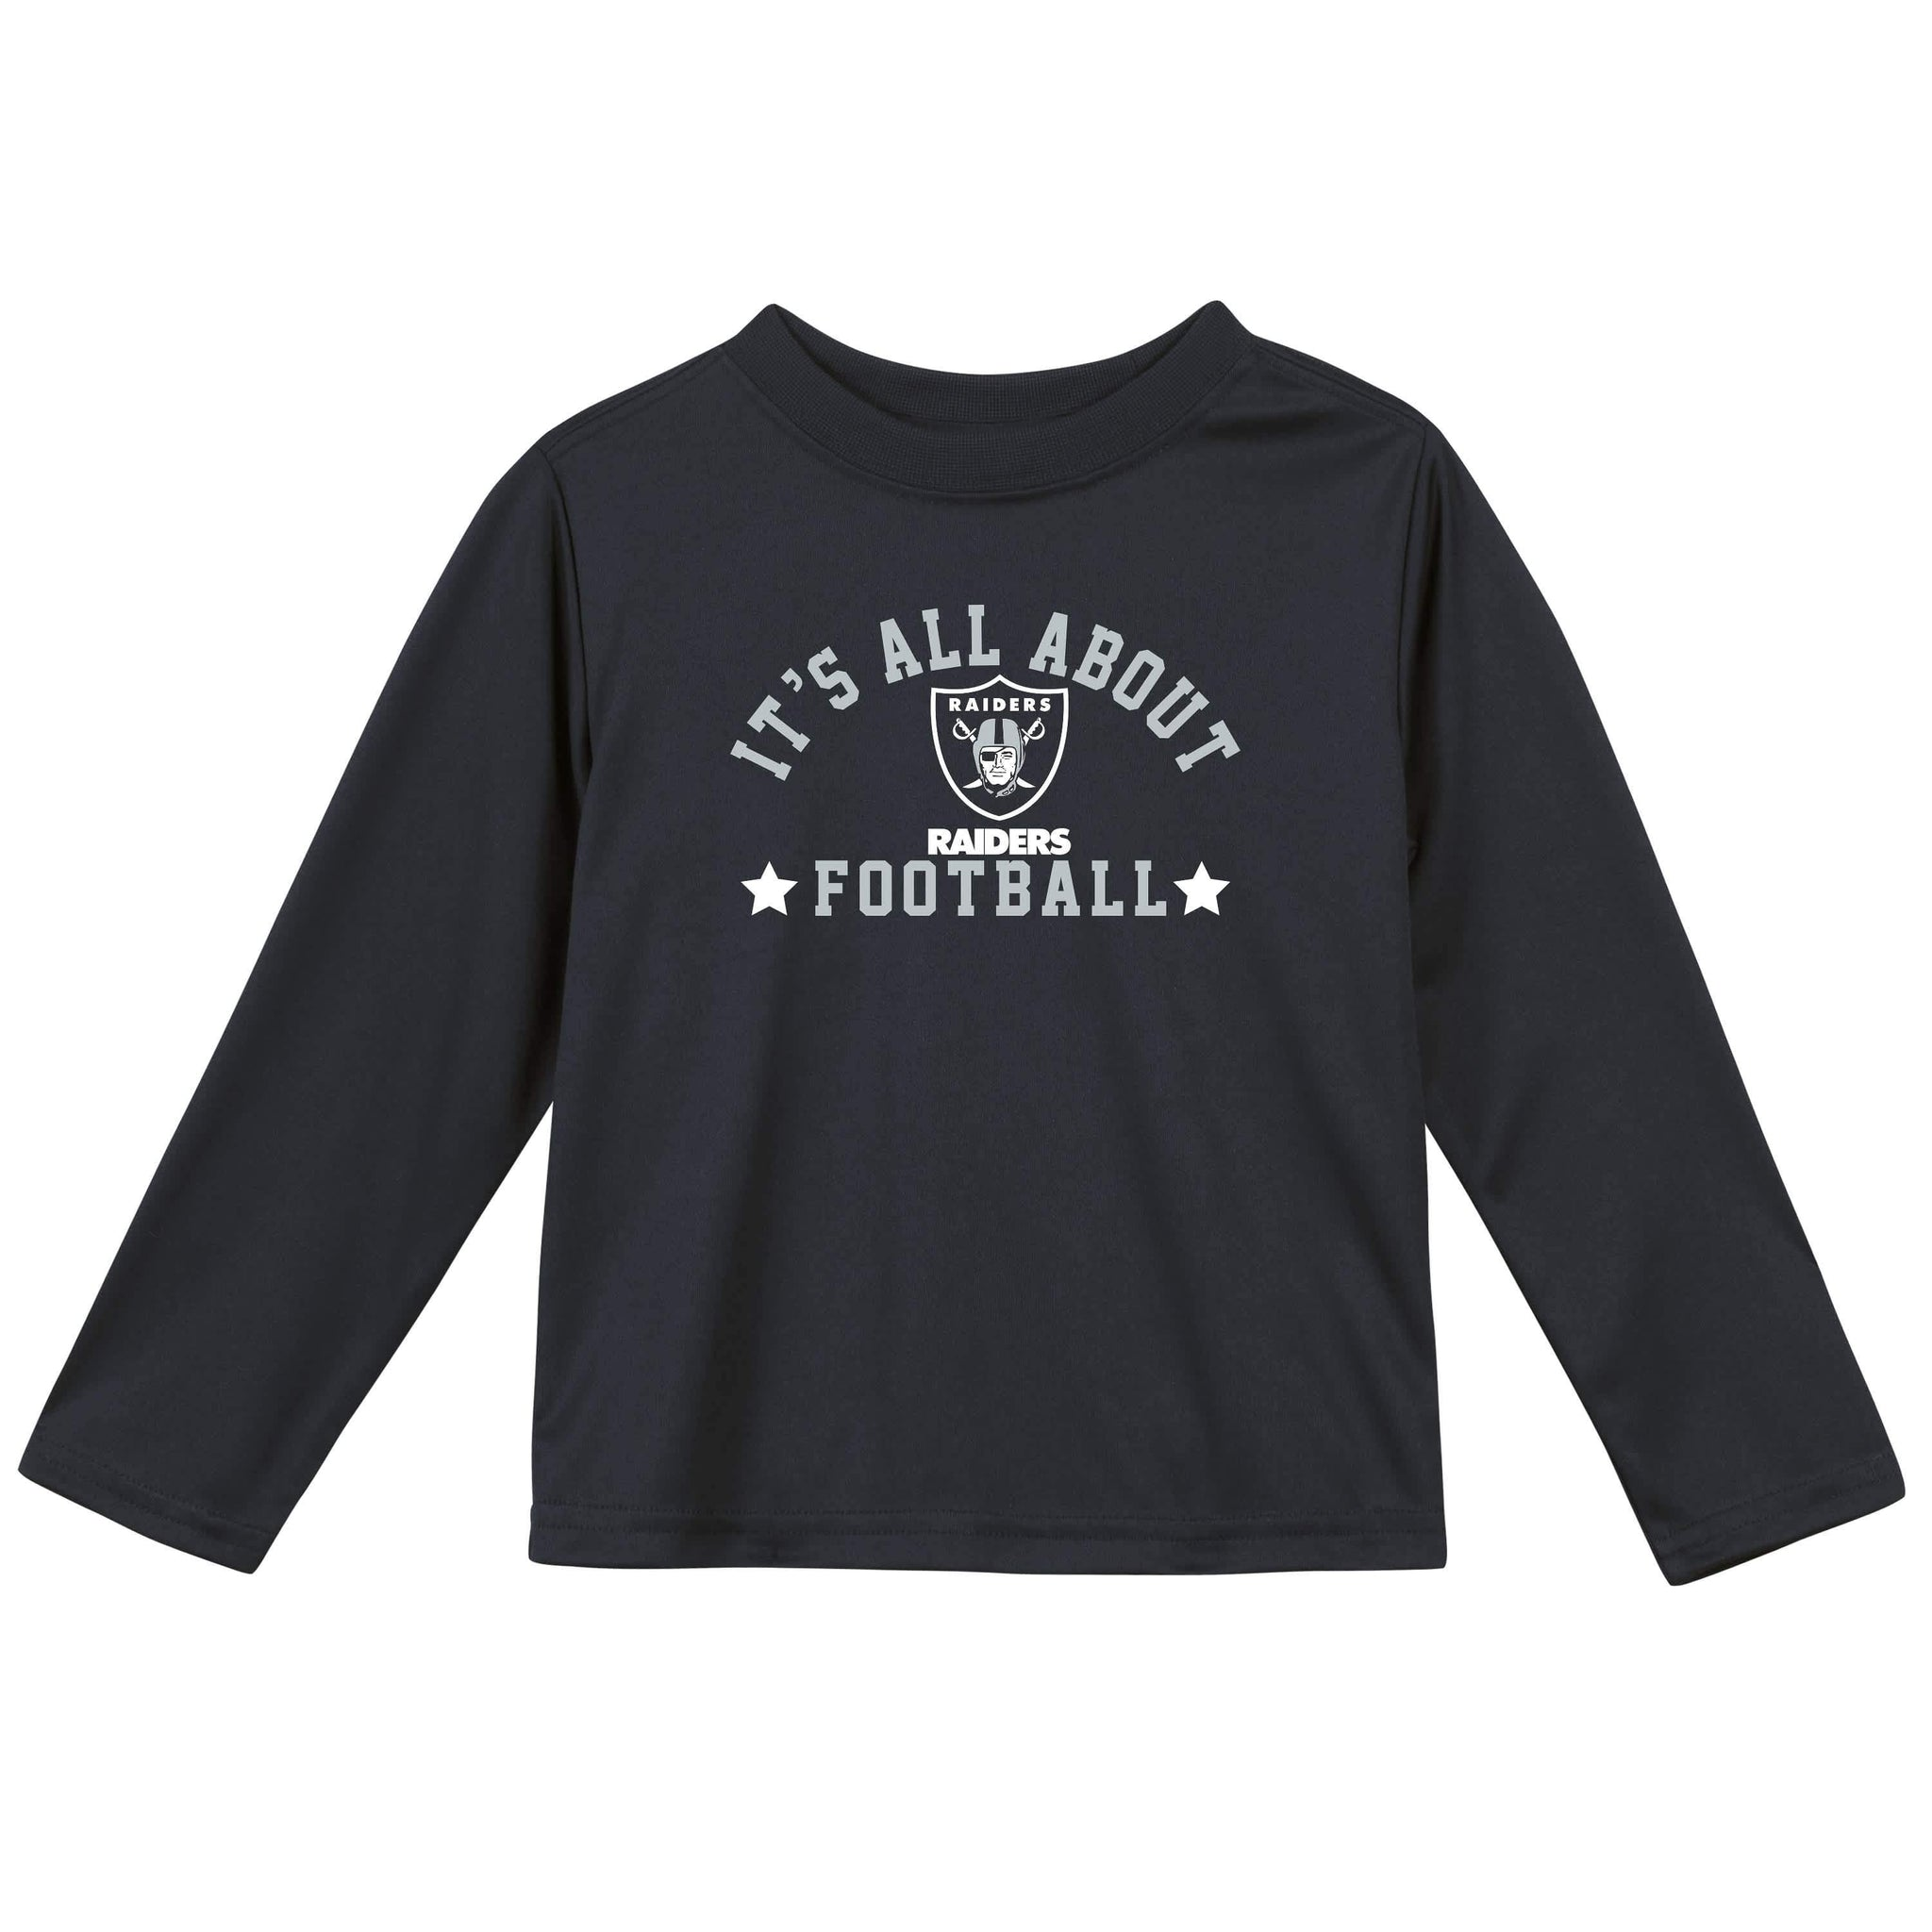 Las Vegas Raiders Baby and Toddler Boys Long Sleeve Tee Shirt